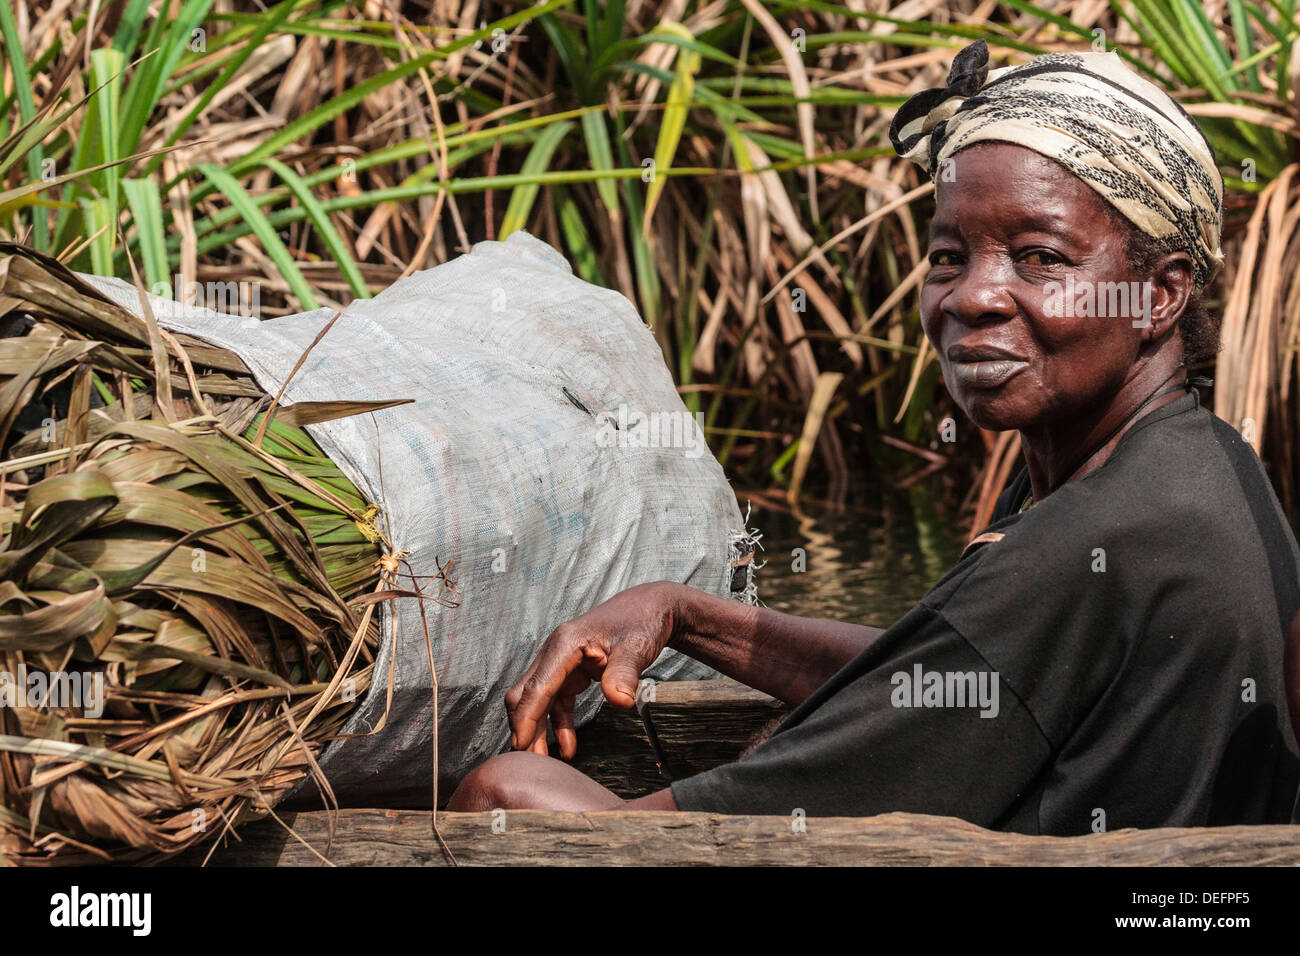 Africa, Liberia, Monrovia. Woman in traditional pirogue moving down Du River. Stock Photo